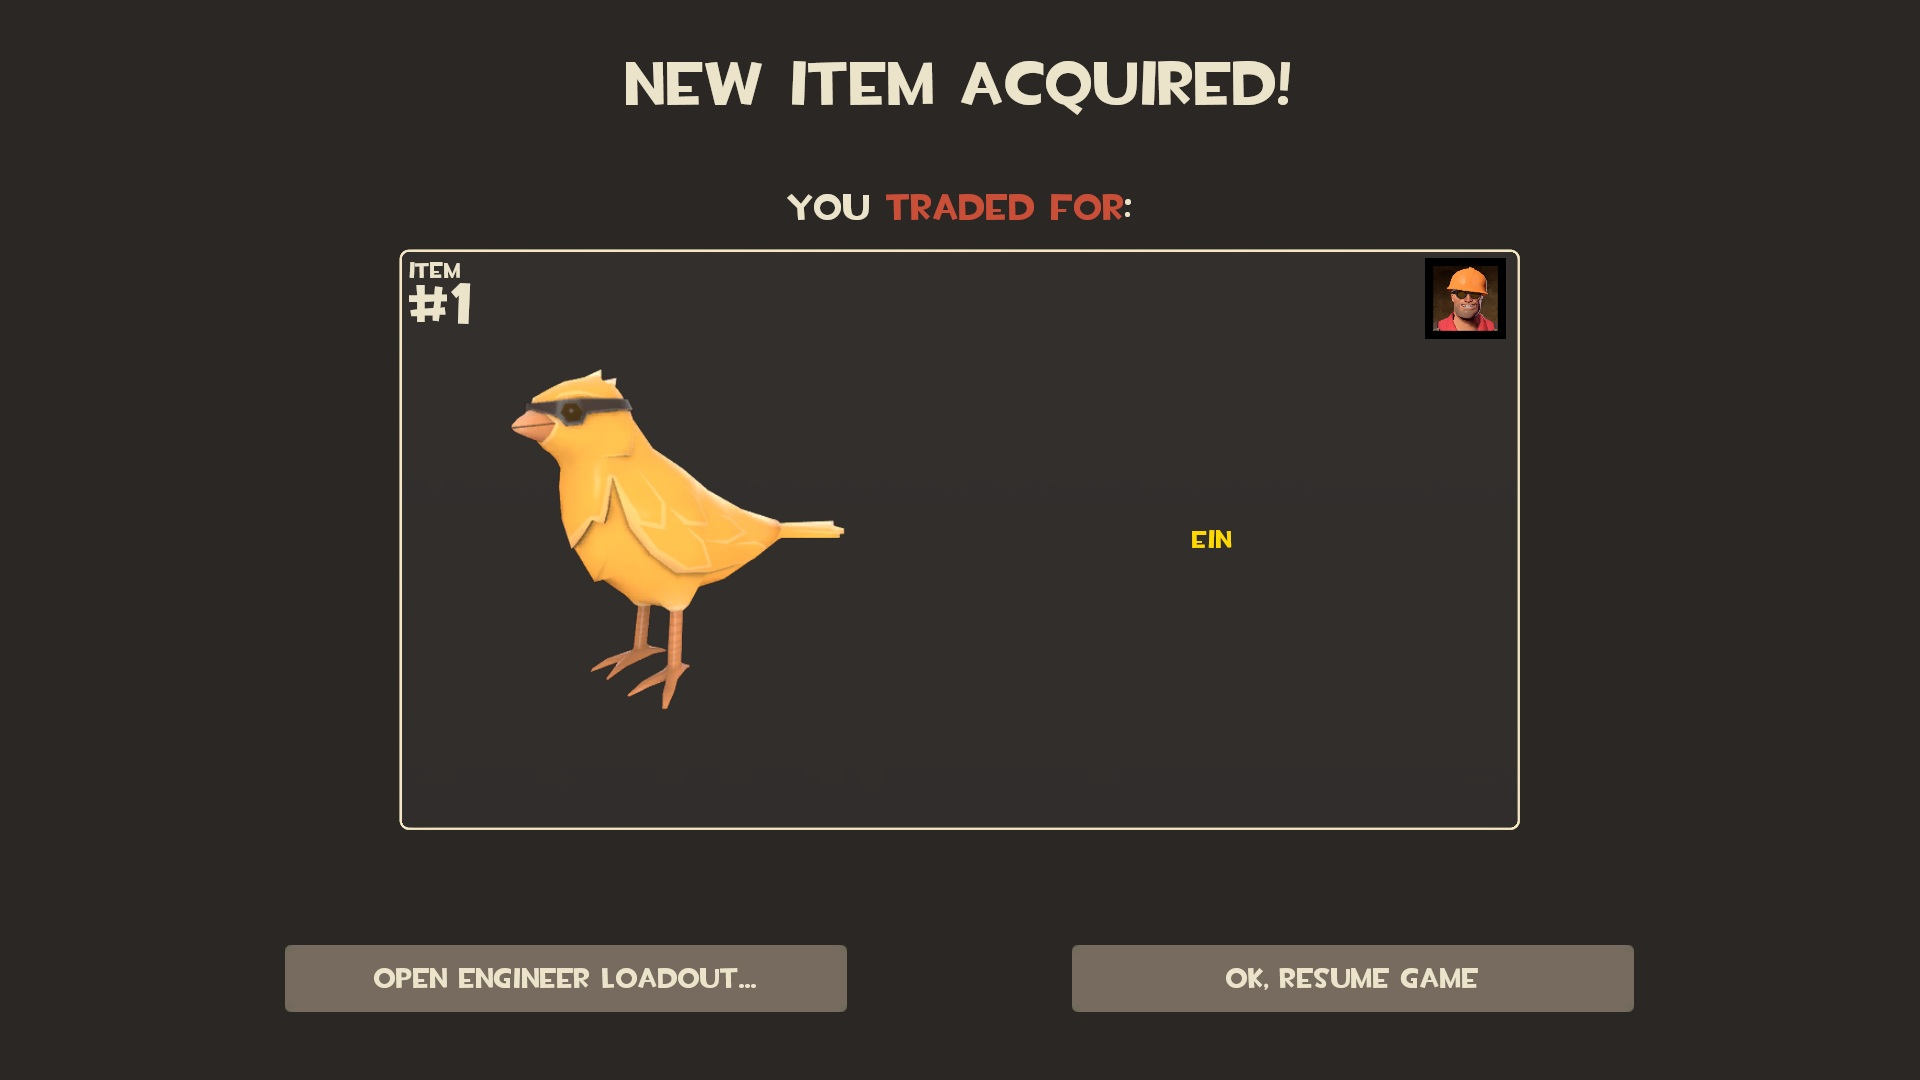 Team fortress 2 trading